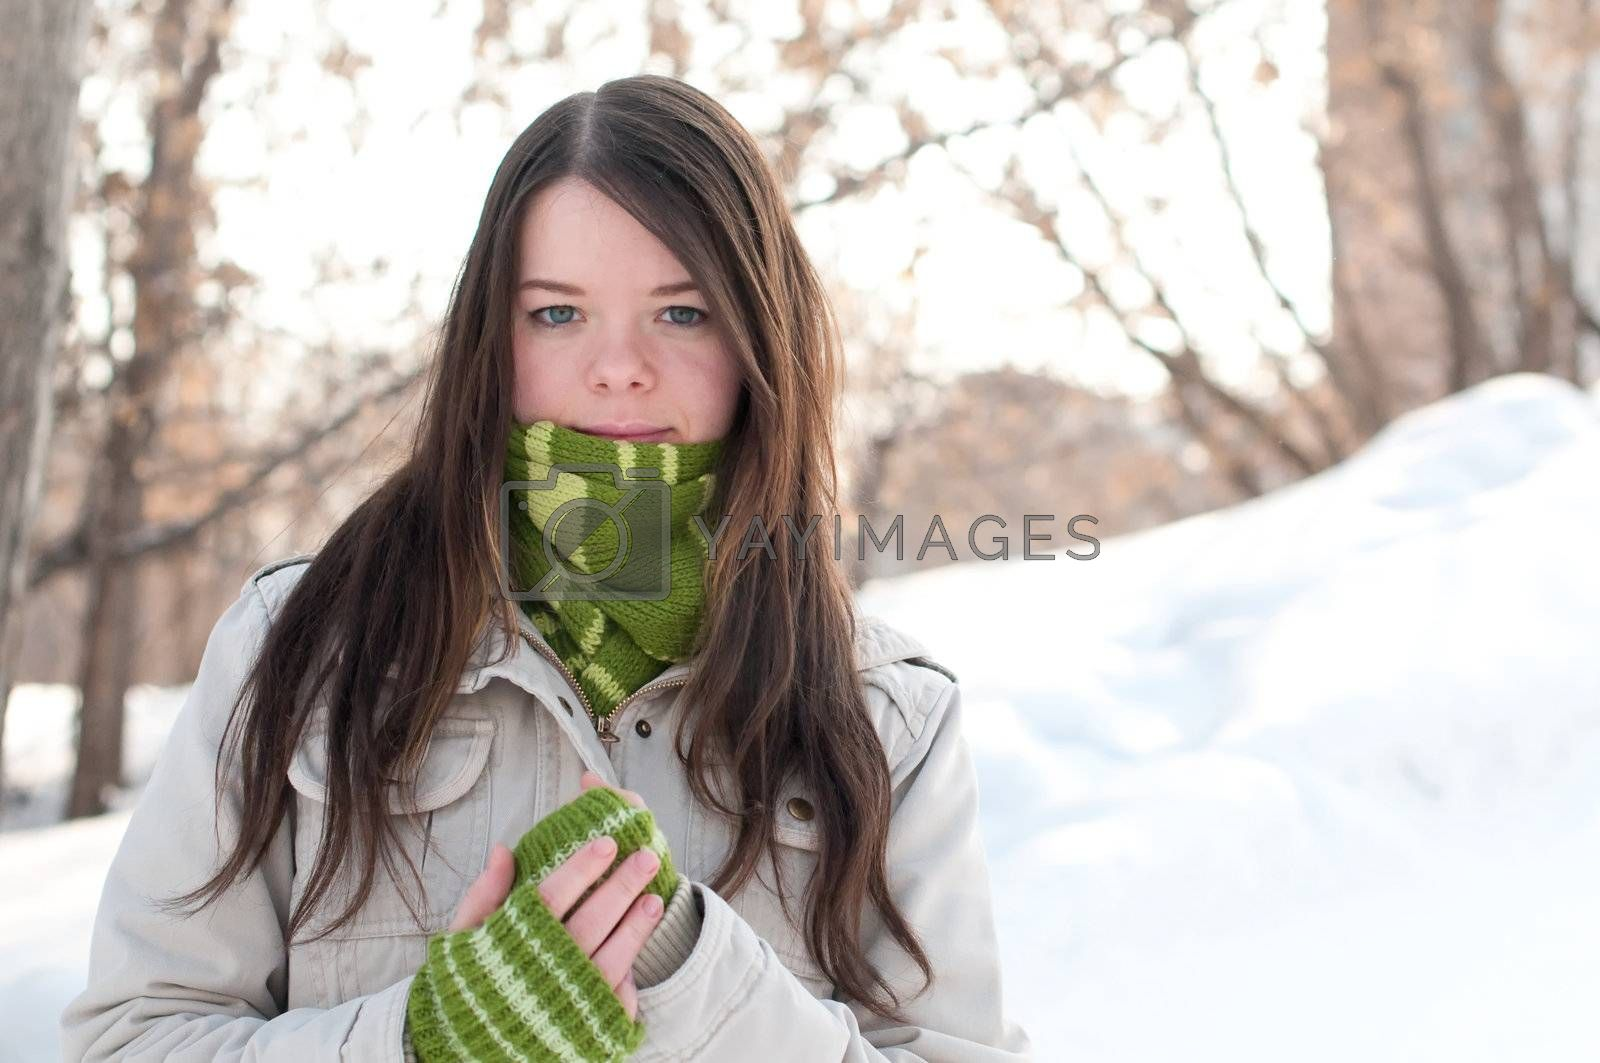 Winter lifestyle. Beautiful girl with green scarf and gloves over snow landscape